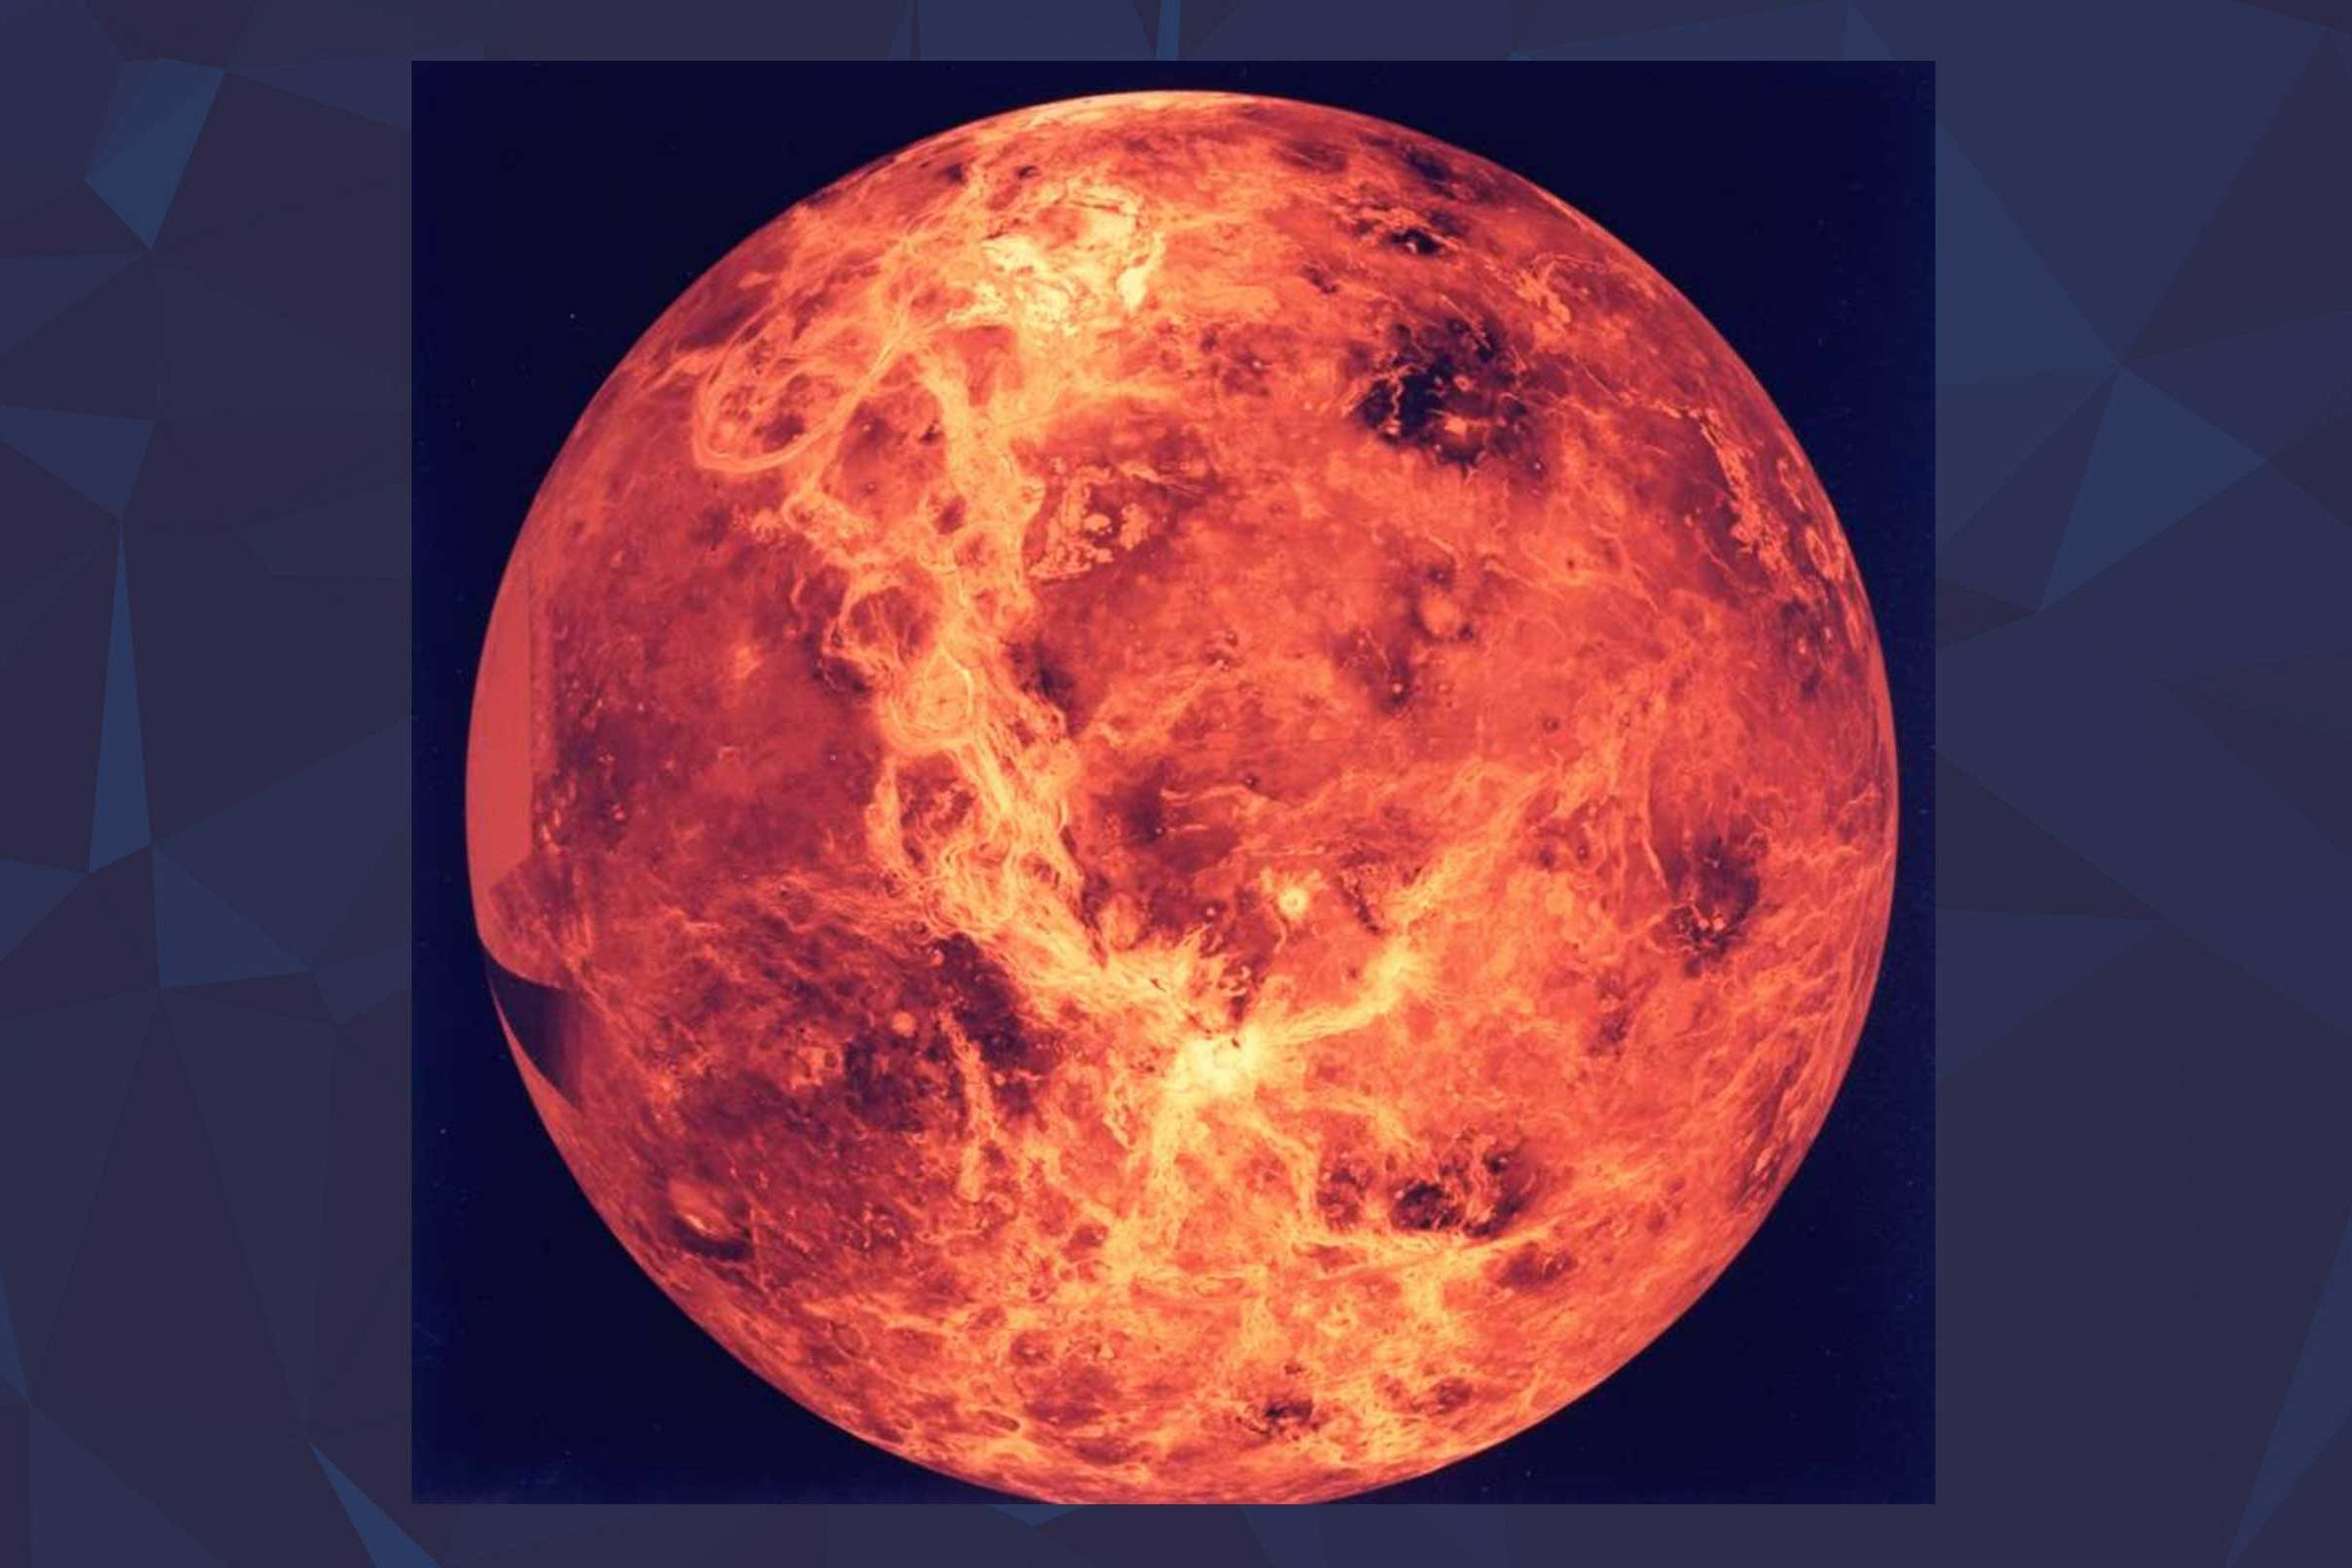 Image of Venus. Credit: NASA